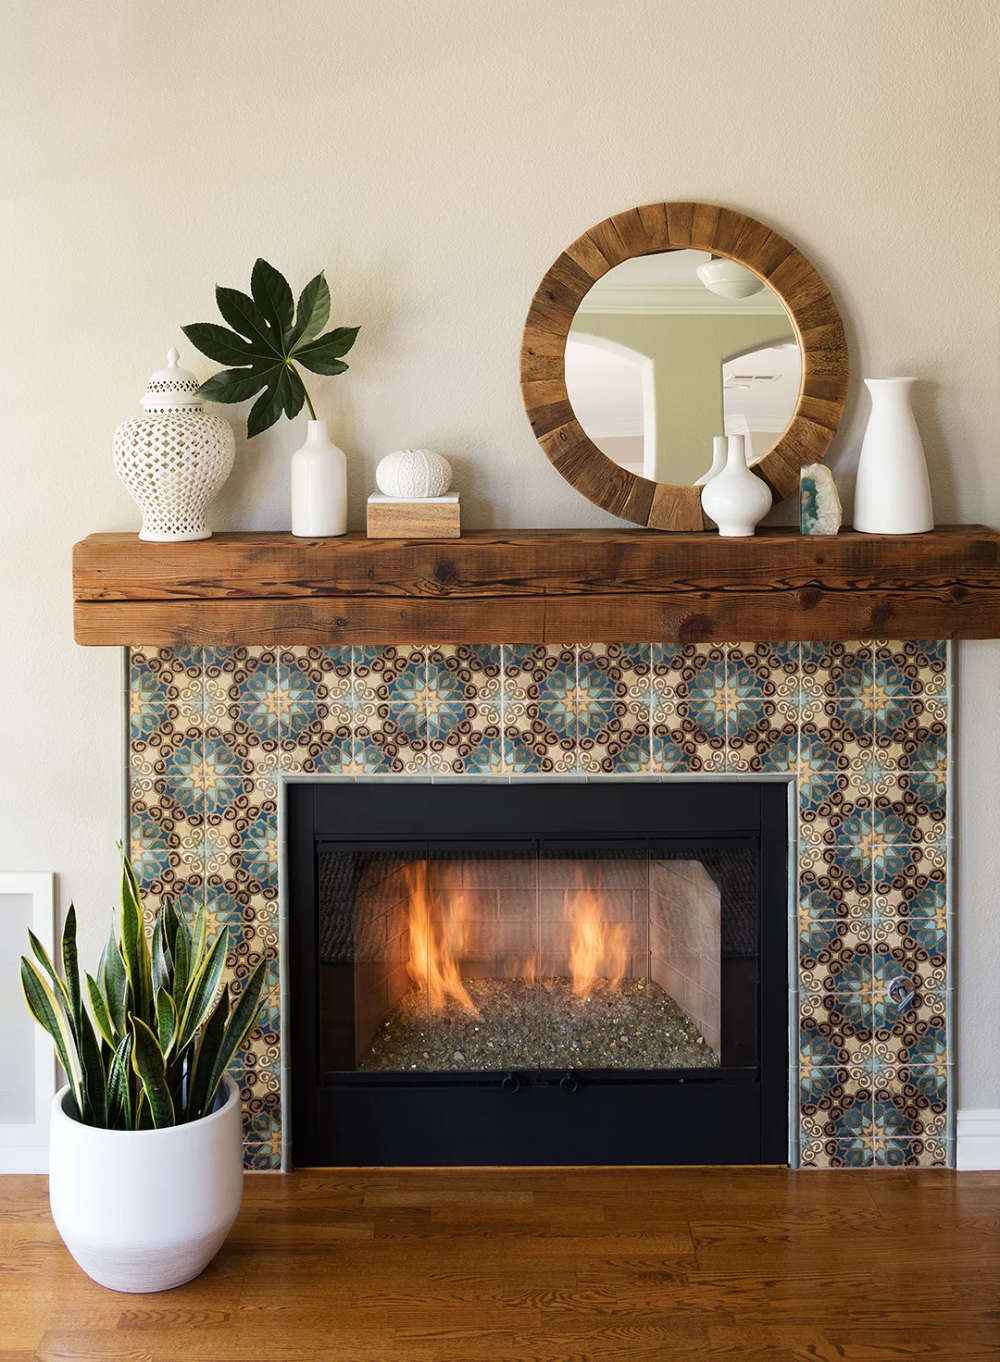 BeforeandAfter Fireplace Makeovers That Go From Cold to